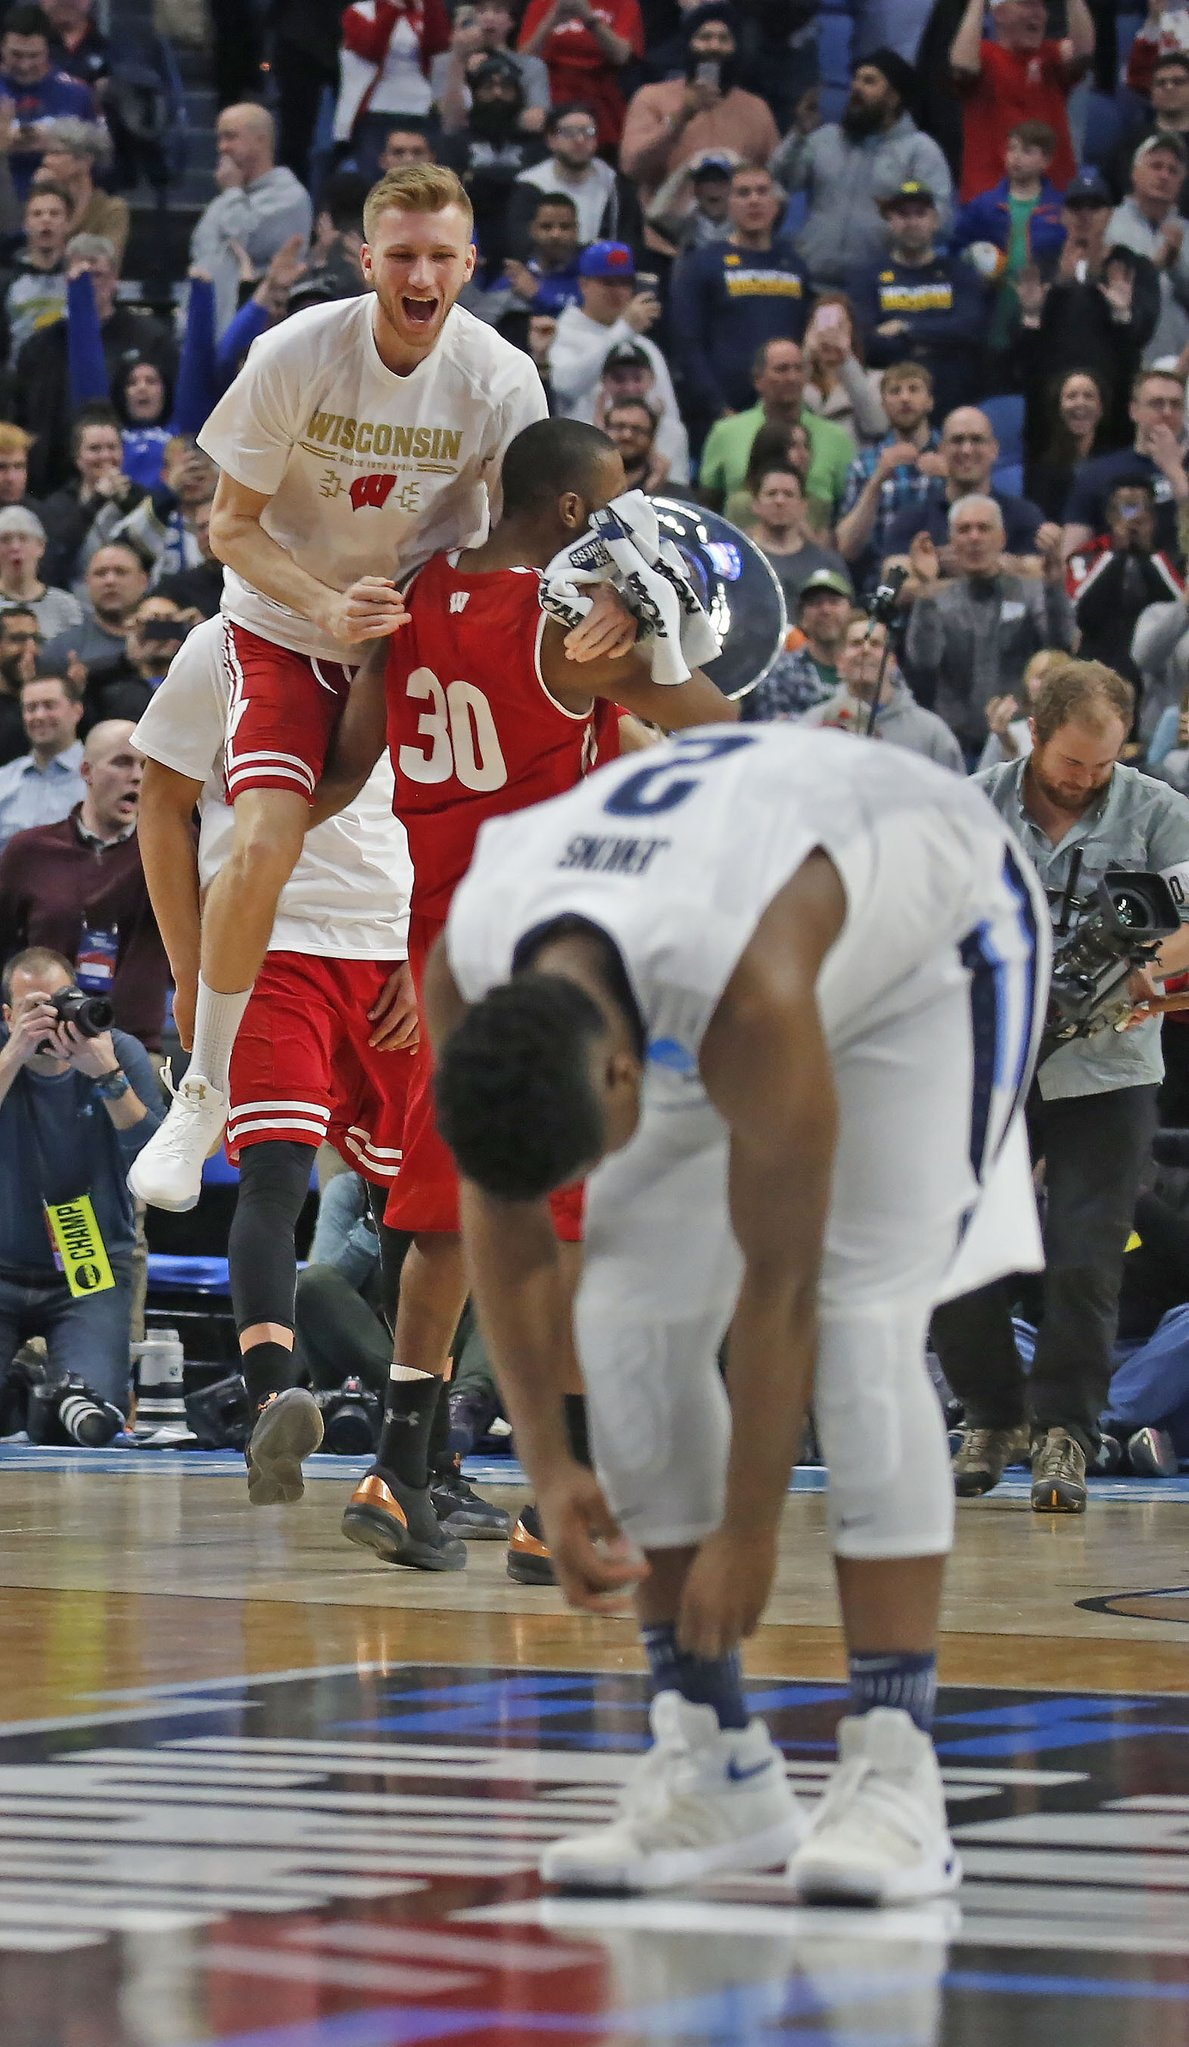 Wisconsin celebrates after beating top-seeded Villanova in the NCAA Tournament (Robert Kirkham/Buffalo News)